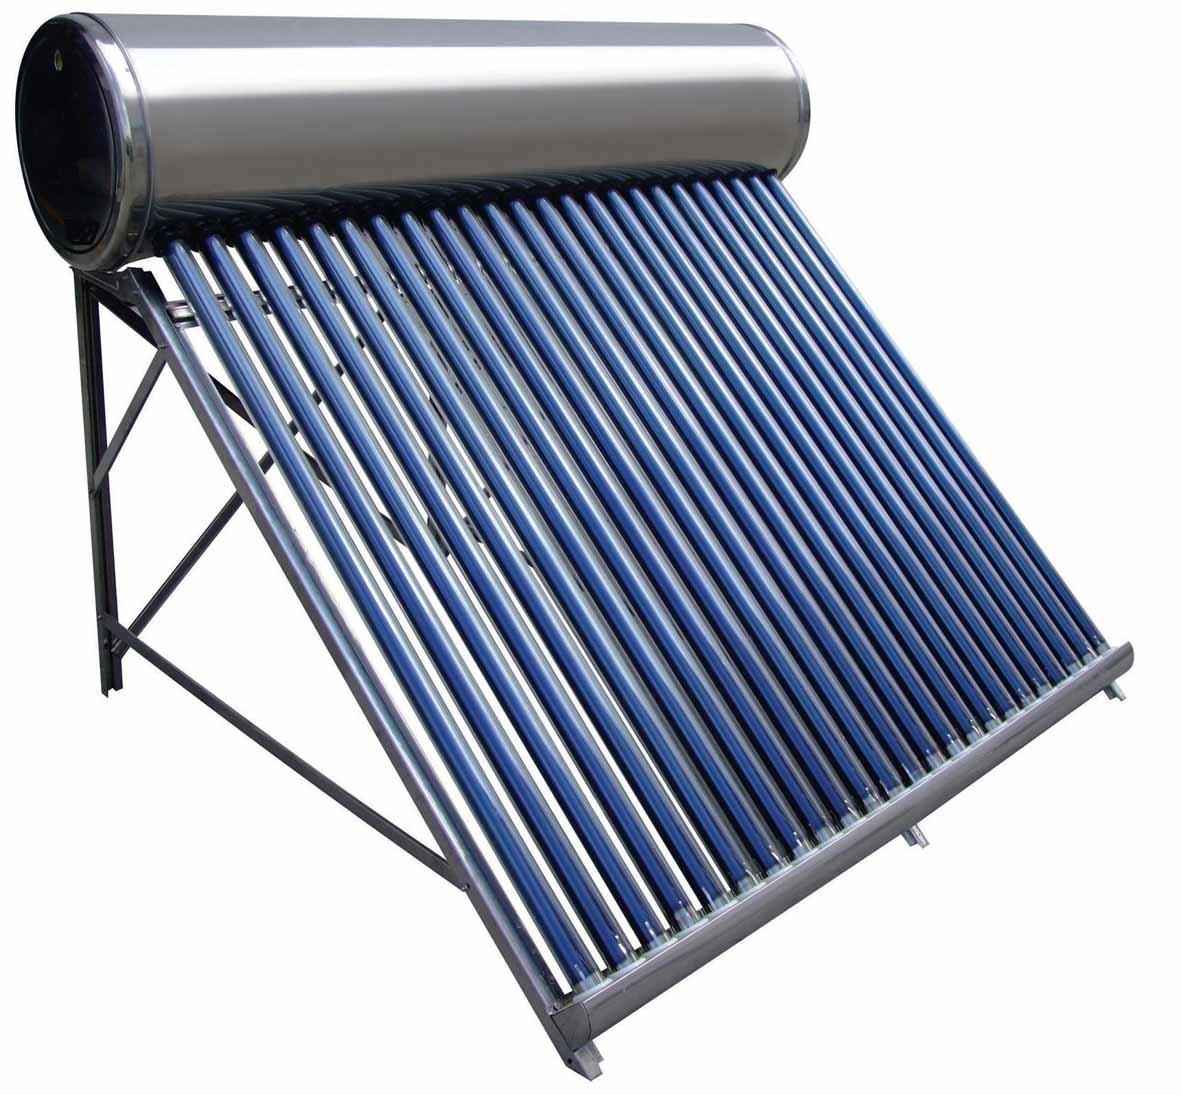 Solar Water Heaters 200 Ltr